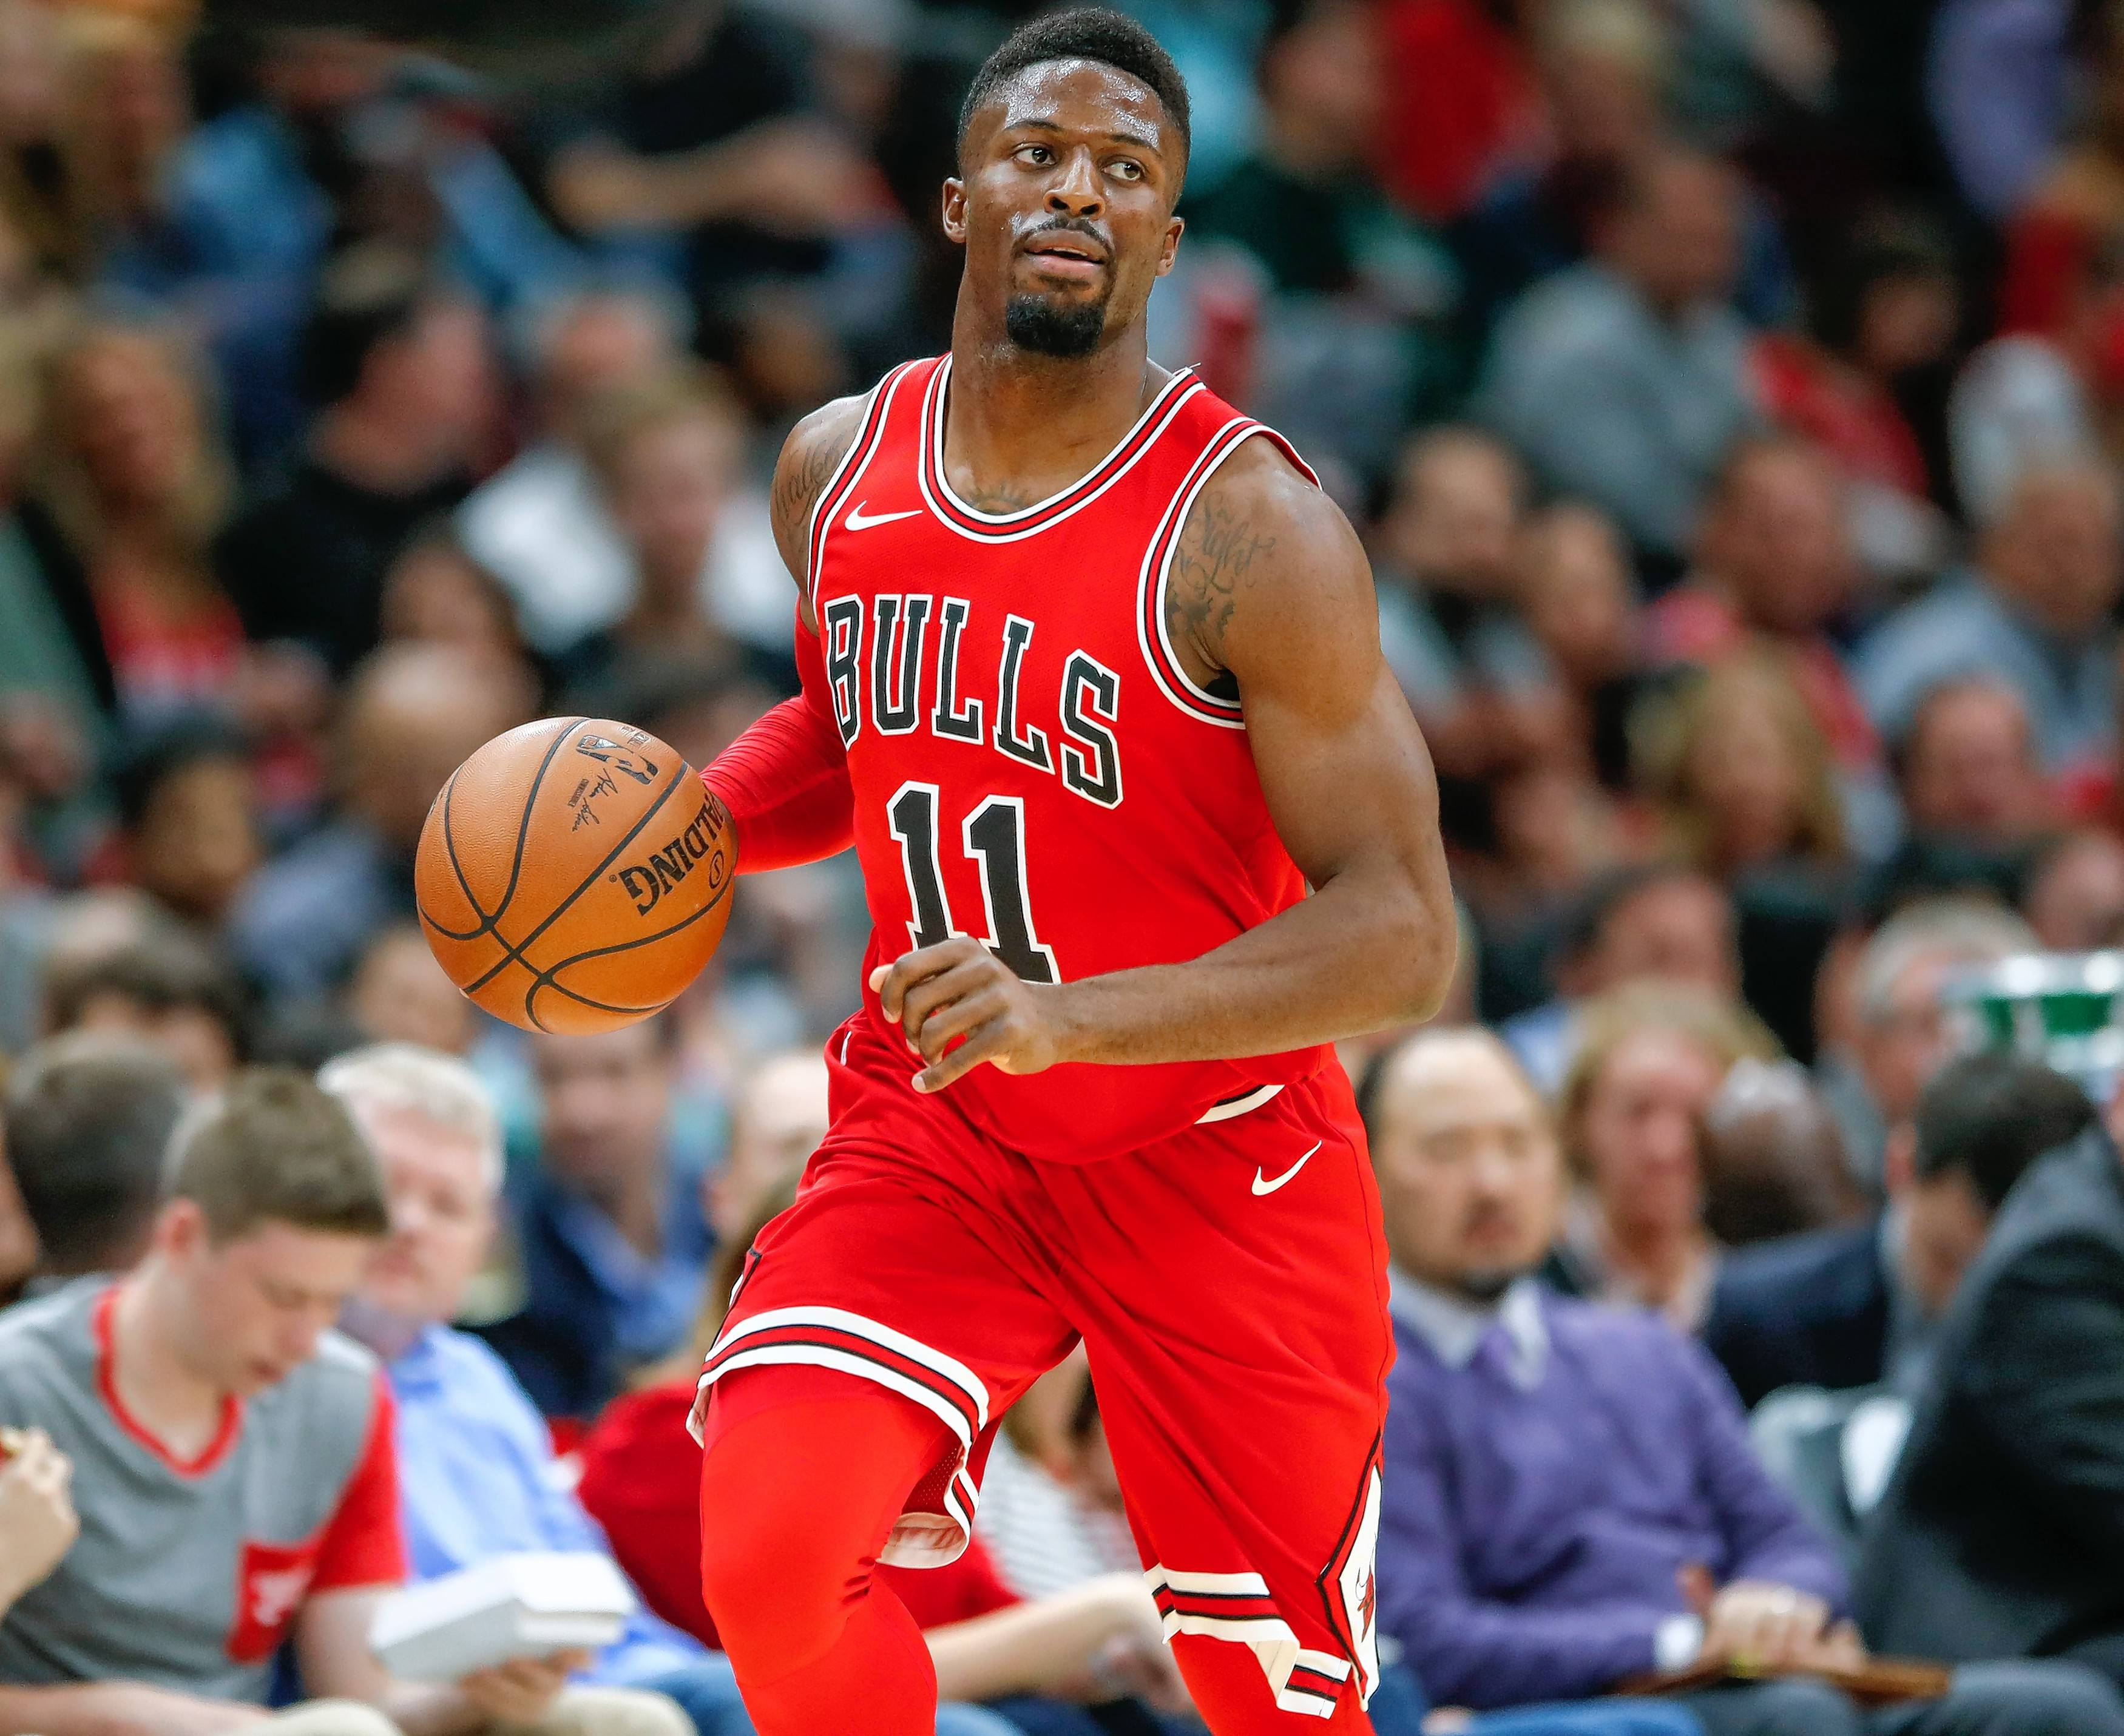 Chicago Bulls guard David Nwaba, now sidelined with an ankle injury, impressed coach Fred Hoiberg with his speed in the transition game.